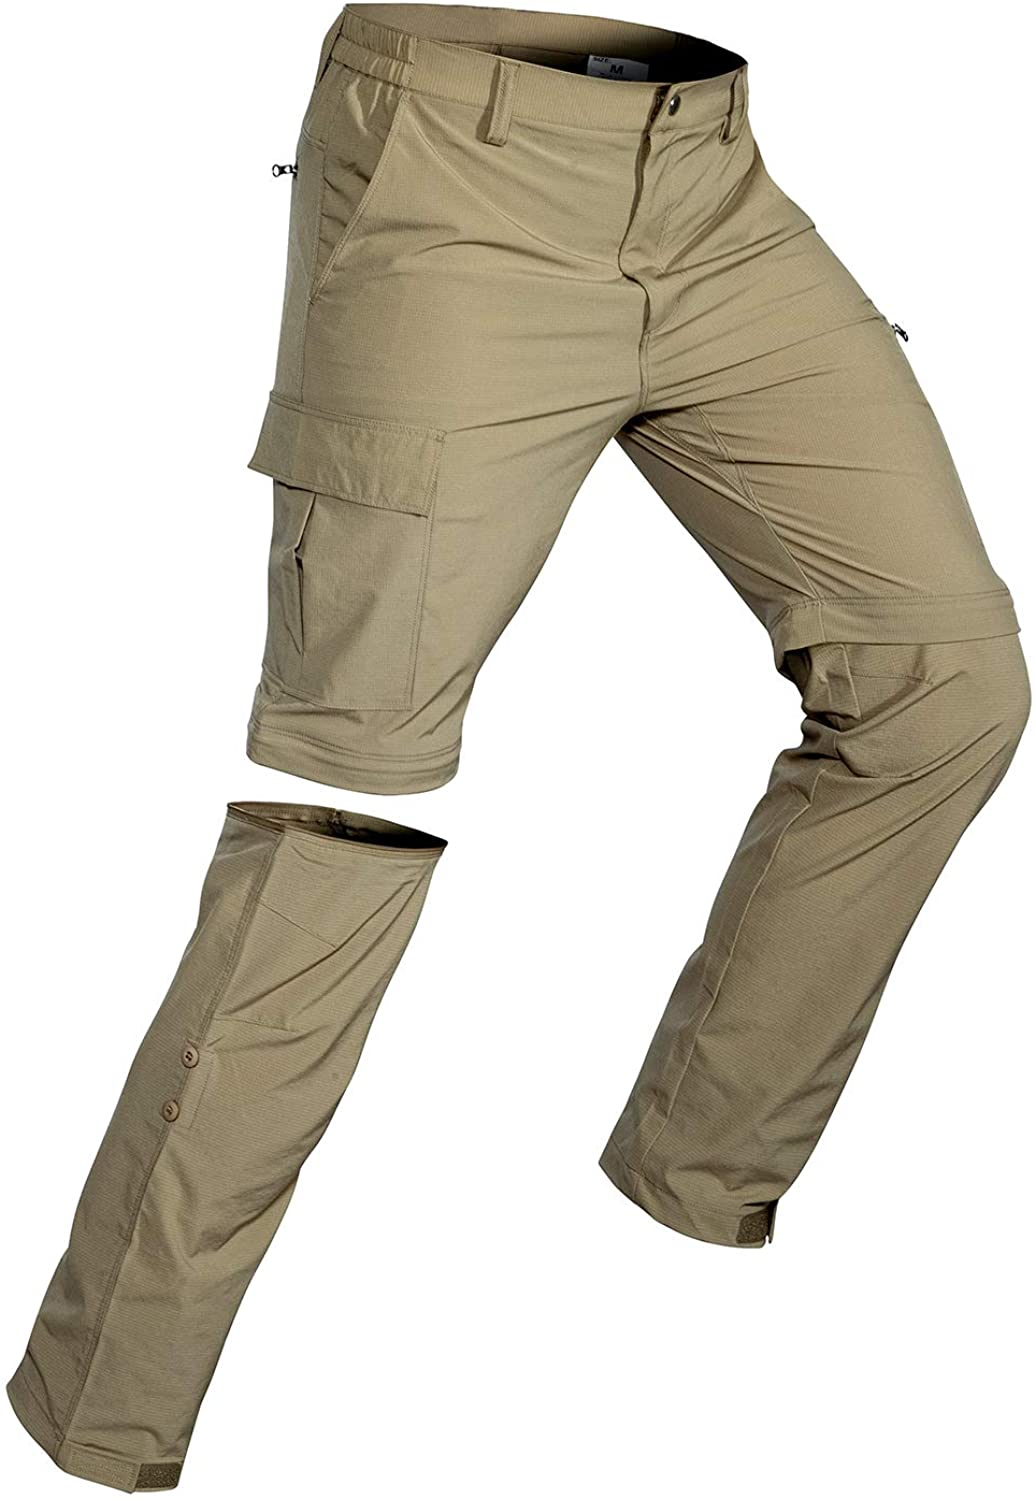 Fishing Wespornow Mens-Convertible-Hiking-Trousers Quick Dry Lightweight Zip Off Breathable Cargo Trousers for Outdoor Safari